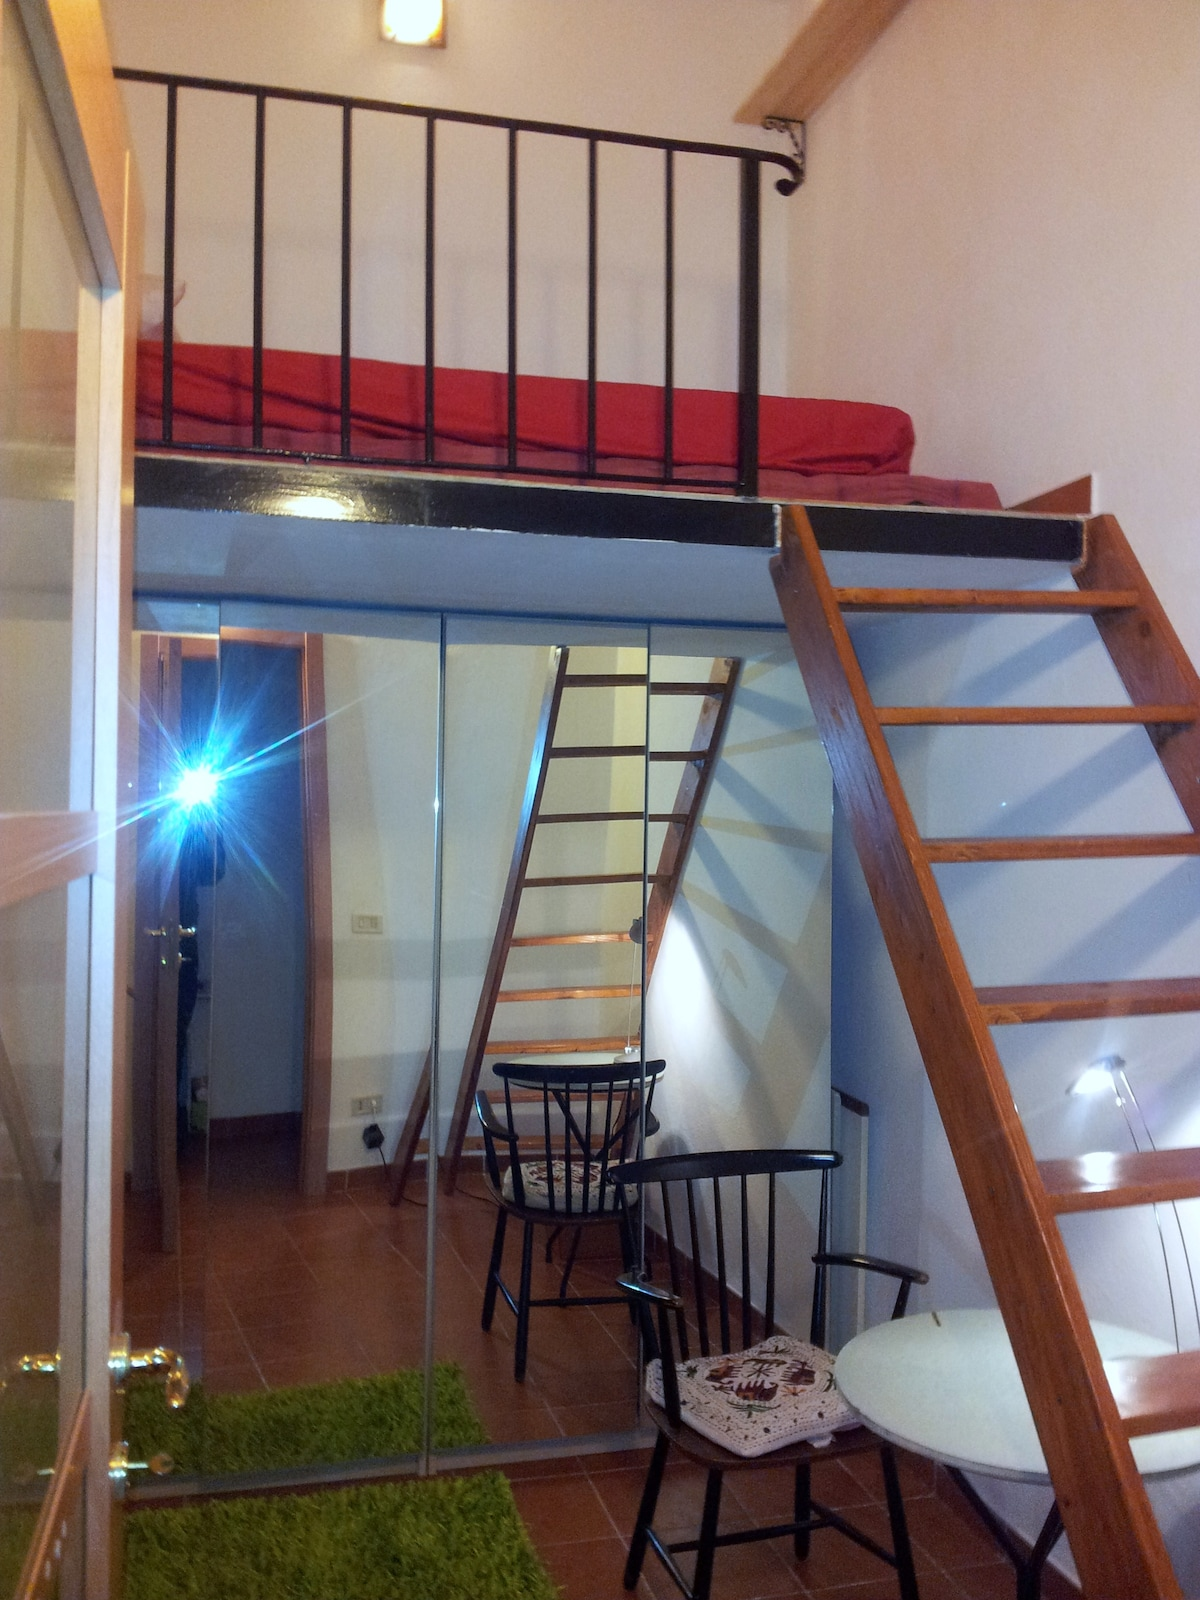 This is the room I let to the guests. A nice loft with a mezzanine. Not too big, but comfortable.